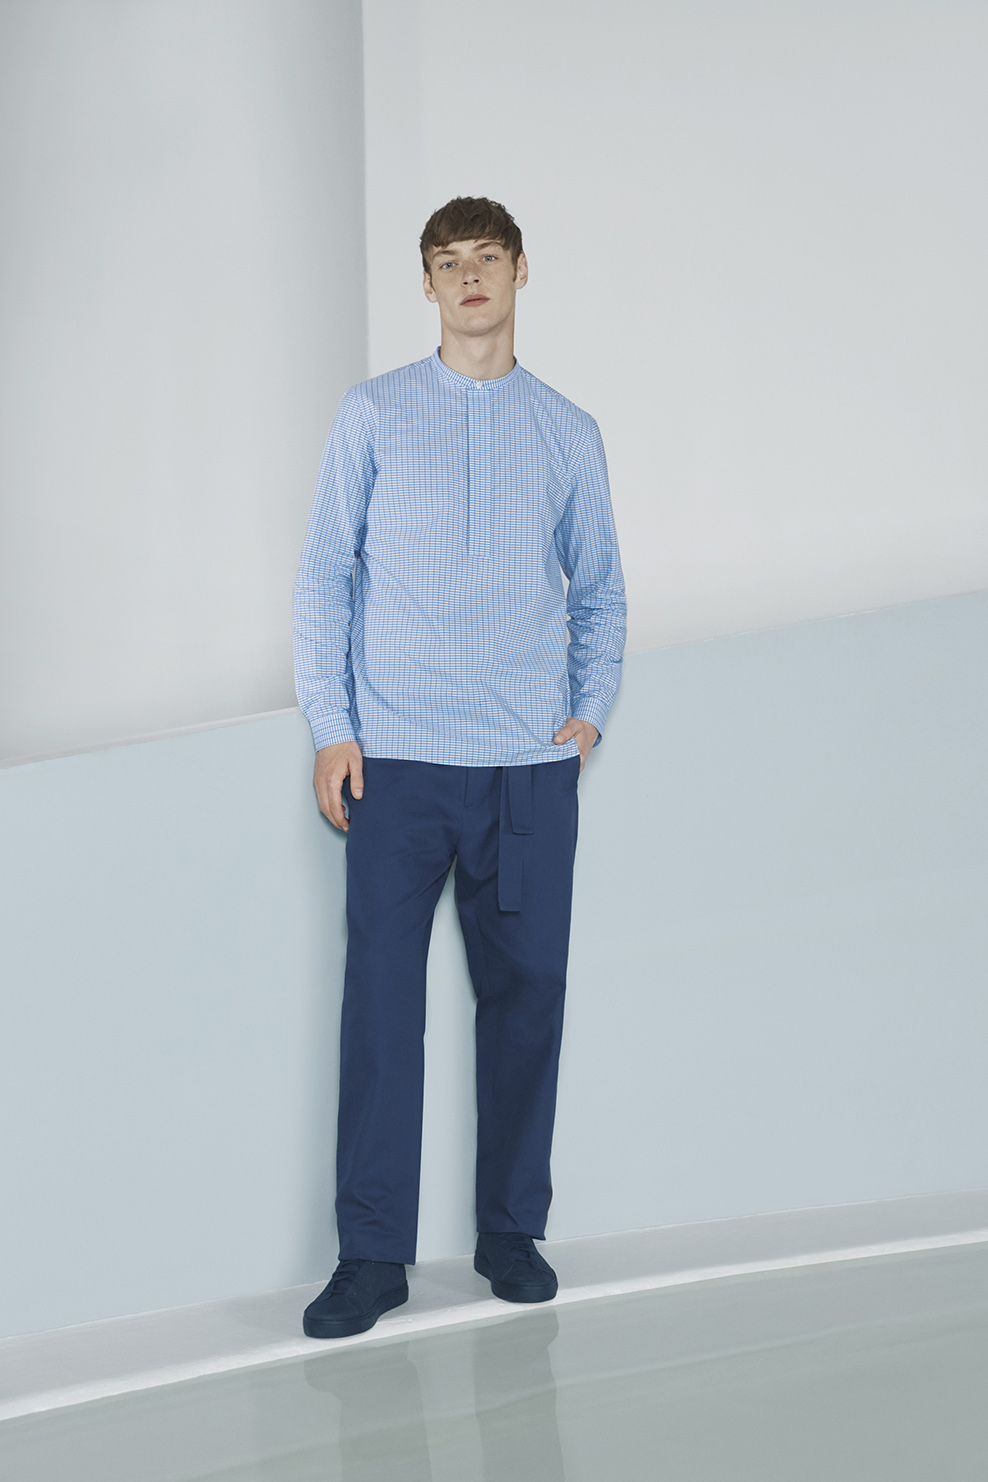 cos-agnes-martin-guggenheim-fw2016-lookbook-mens-womens-4